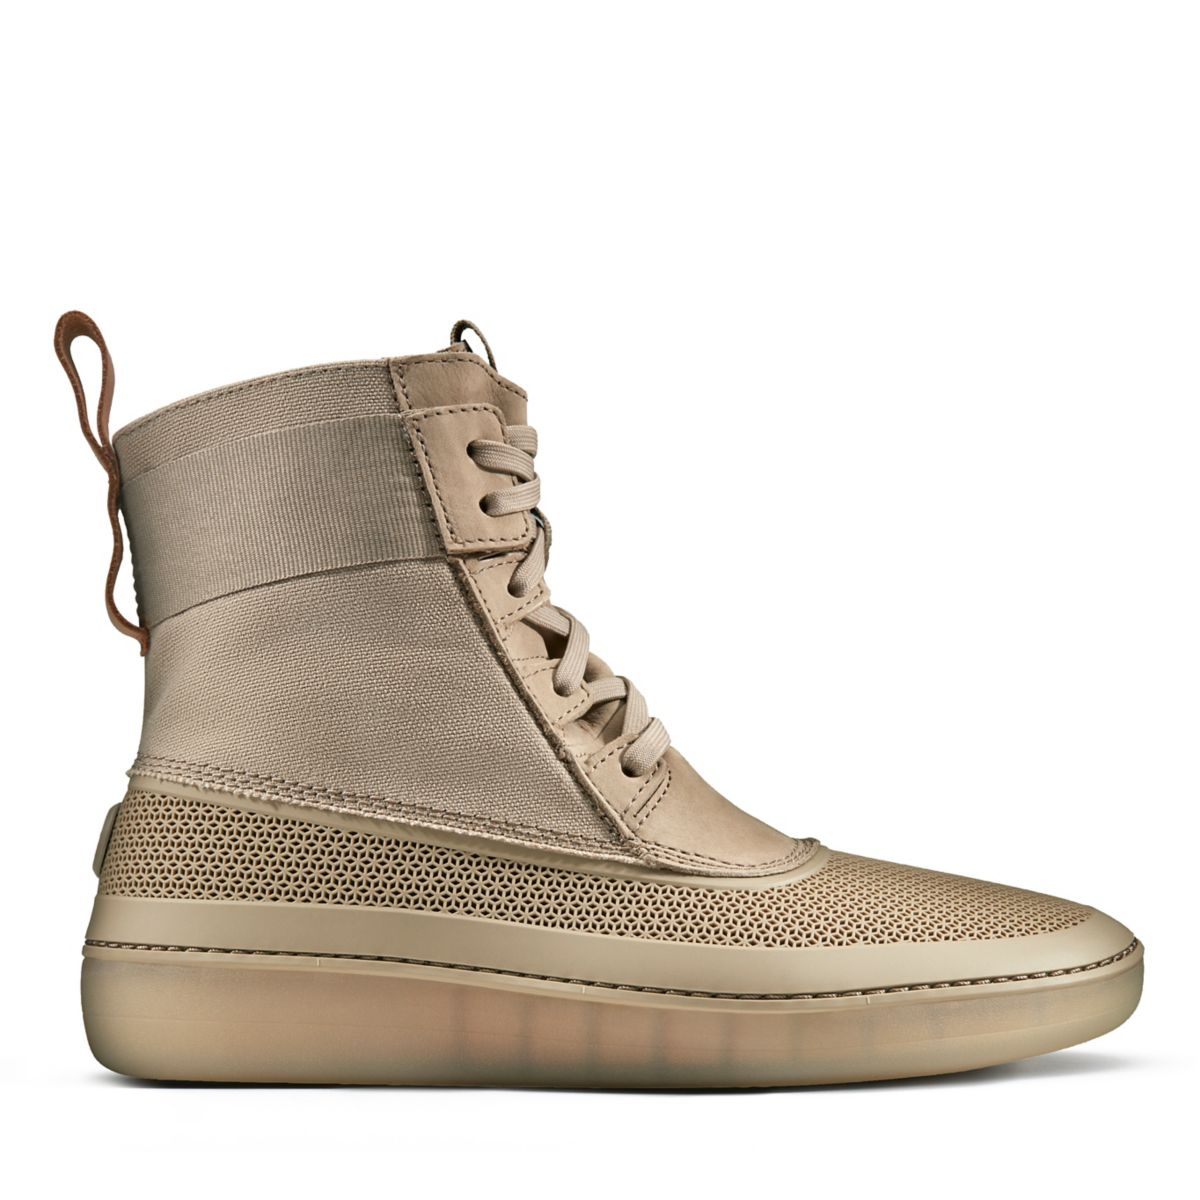 Womens Nature Rey Sand Clarks 174 Shoes Official Site Clarks